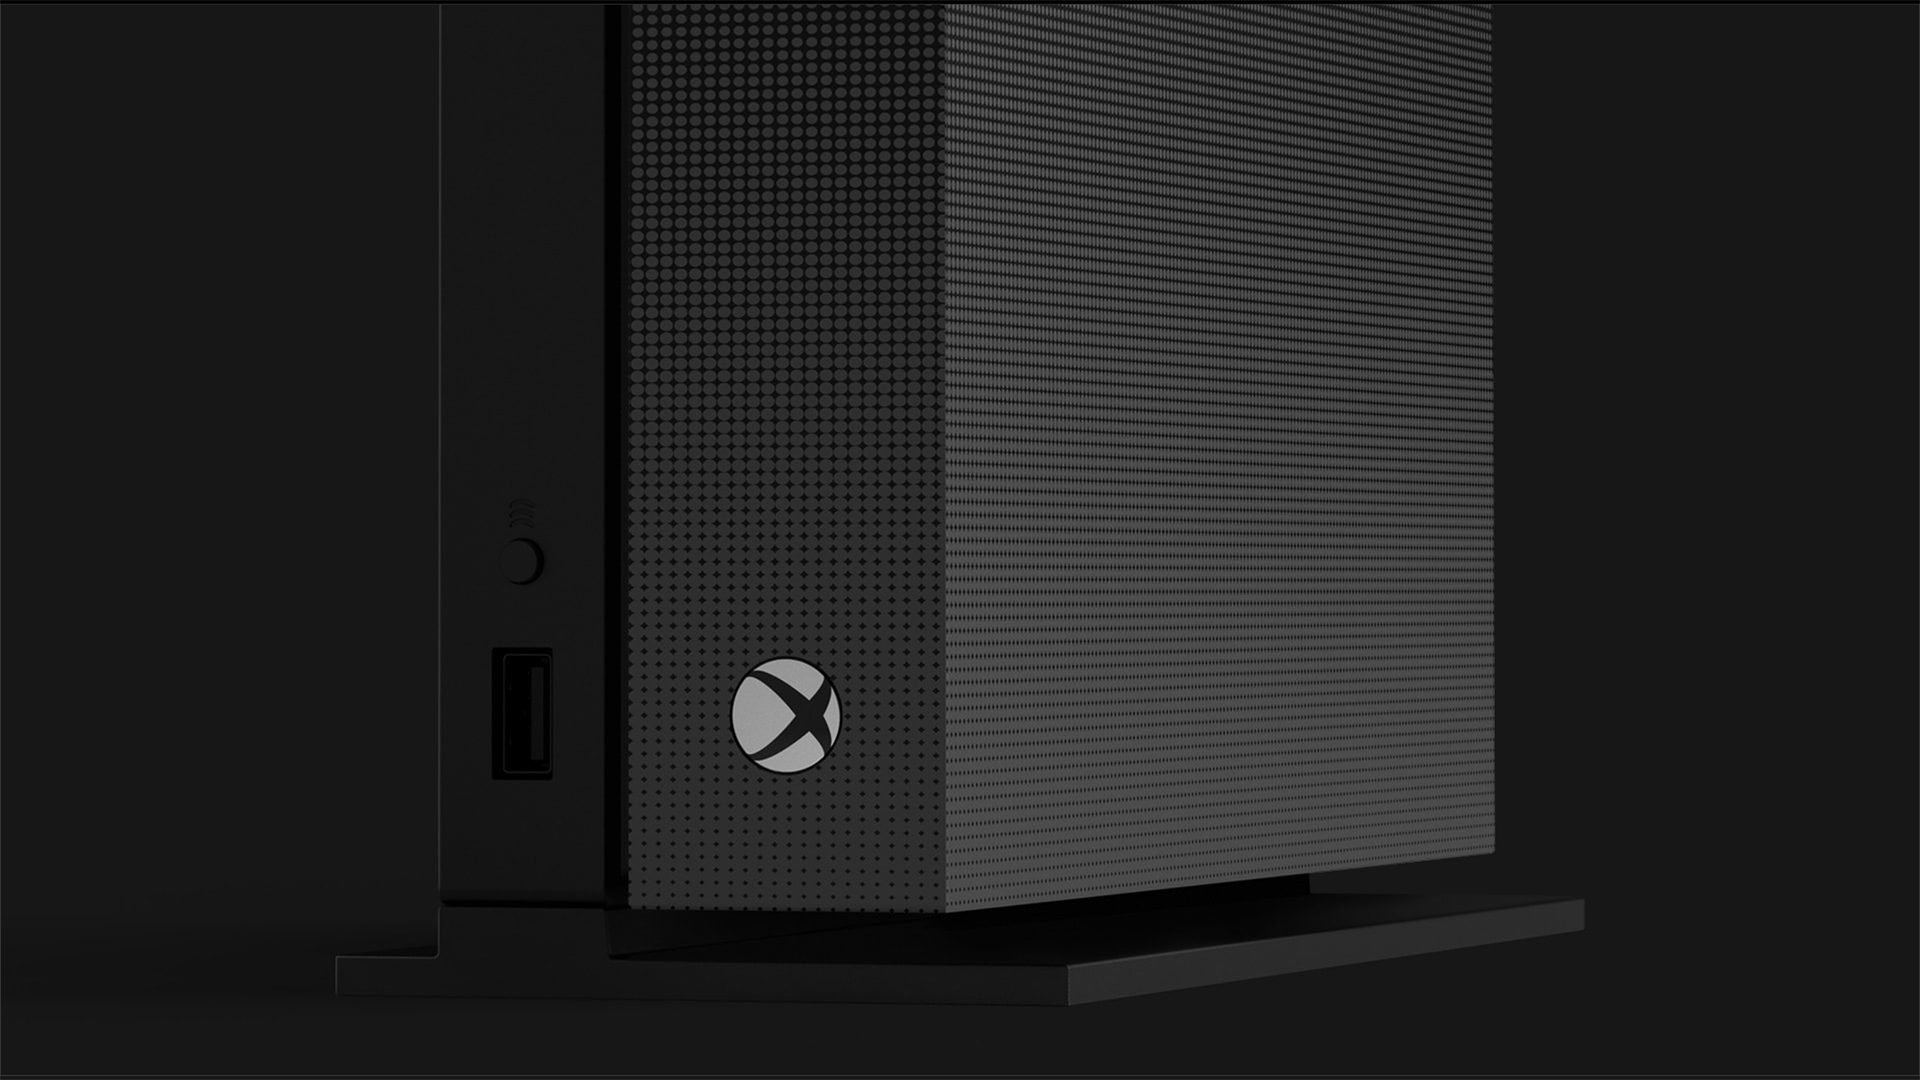 Project Scorpio Returns As Special Edition Xbox One X Pre